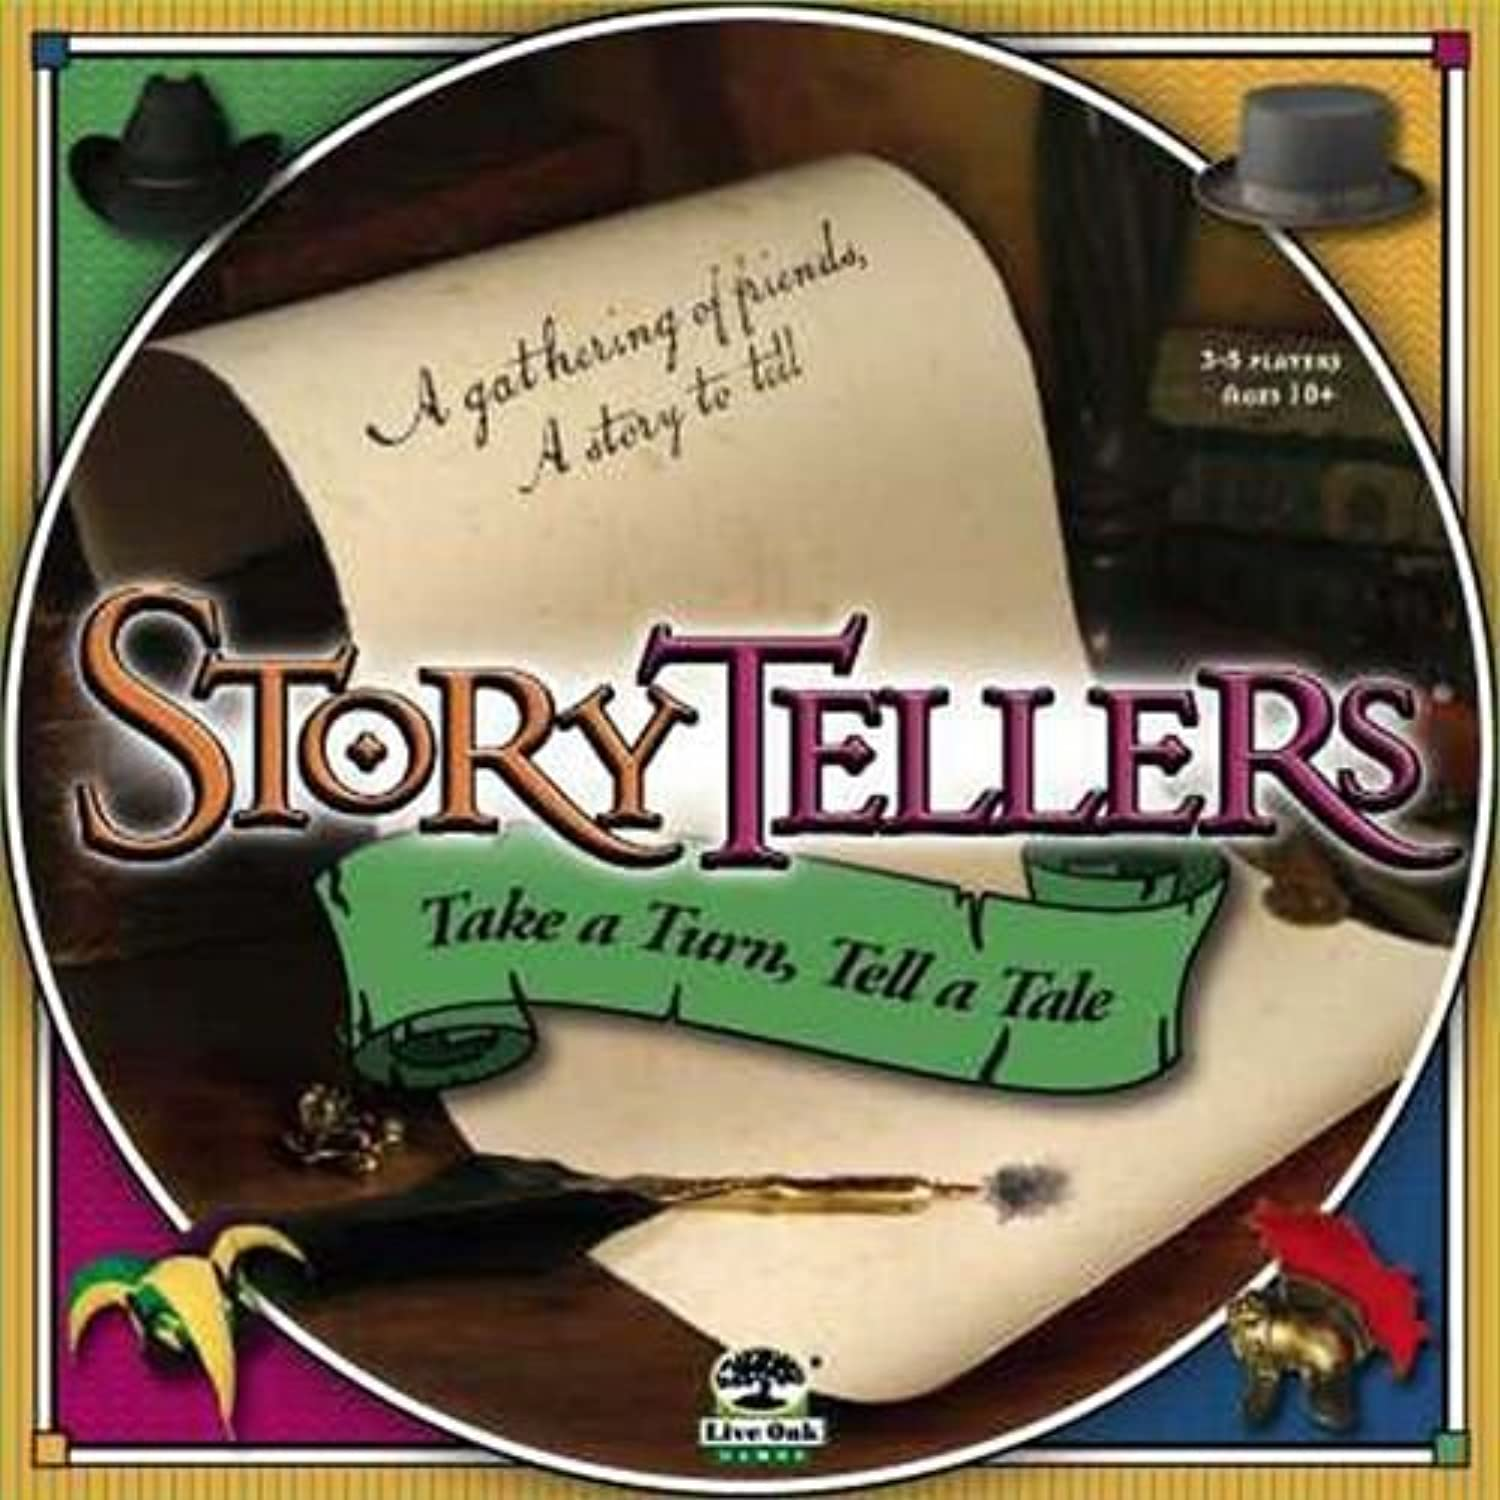 Story Tellers by Live Oak Games